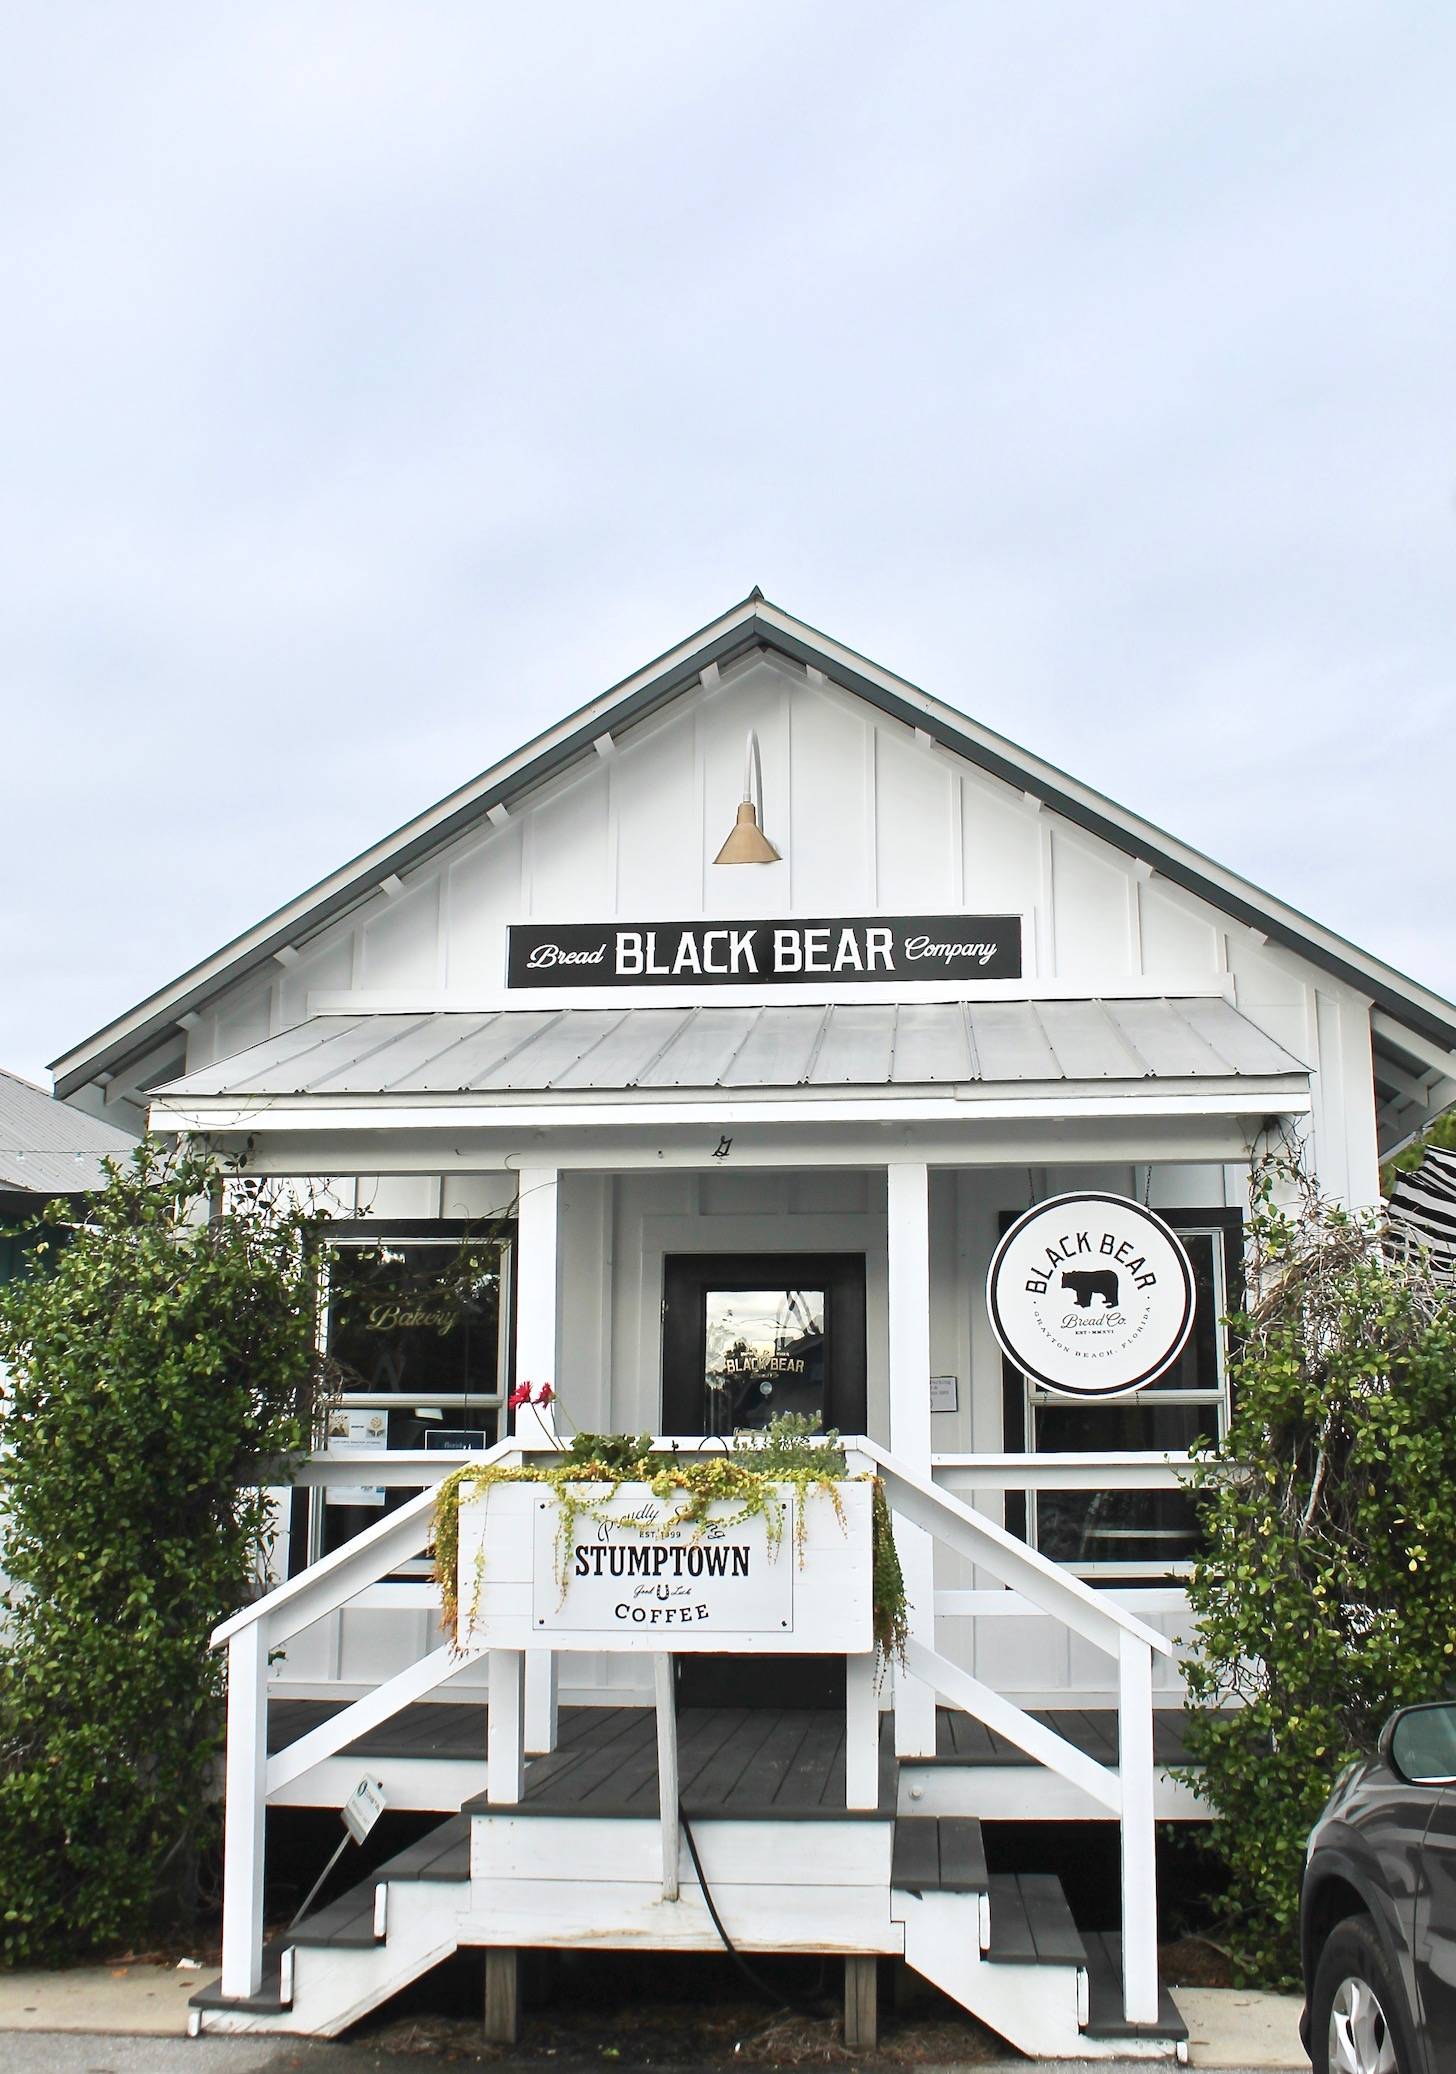 Go for breakfast and coffee at Black Bear Bread Co in Grayton Beach, FL.